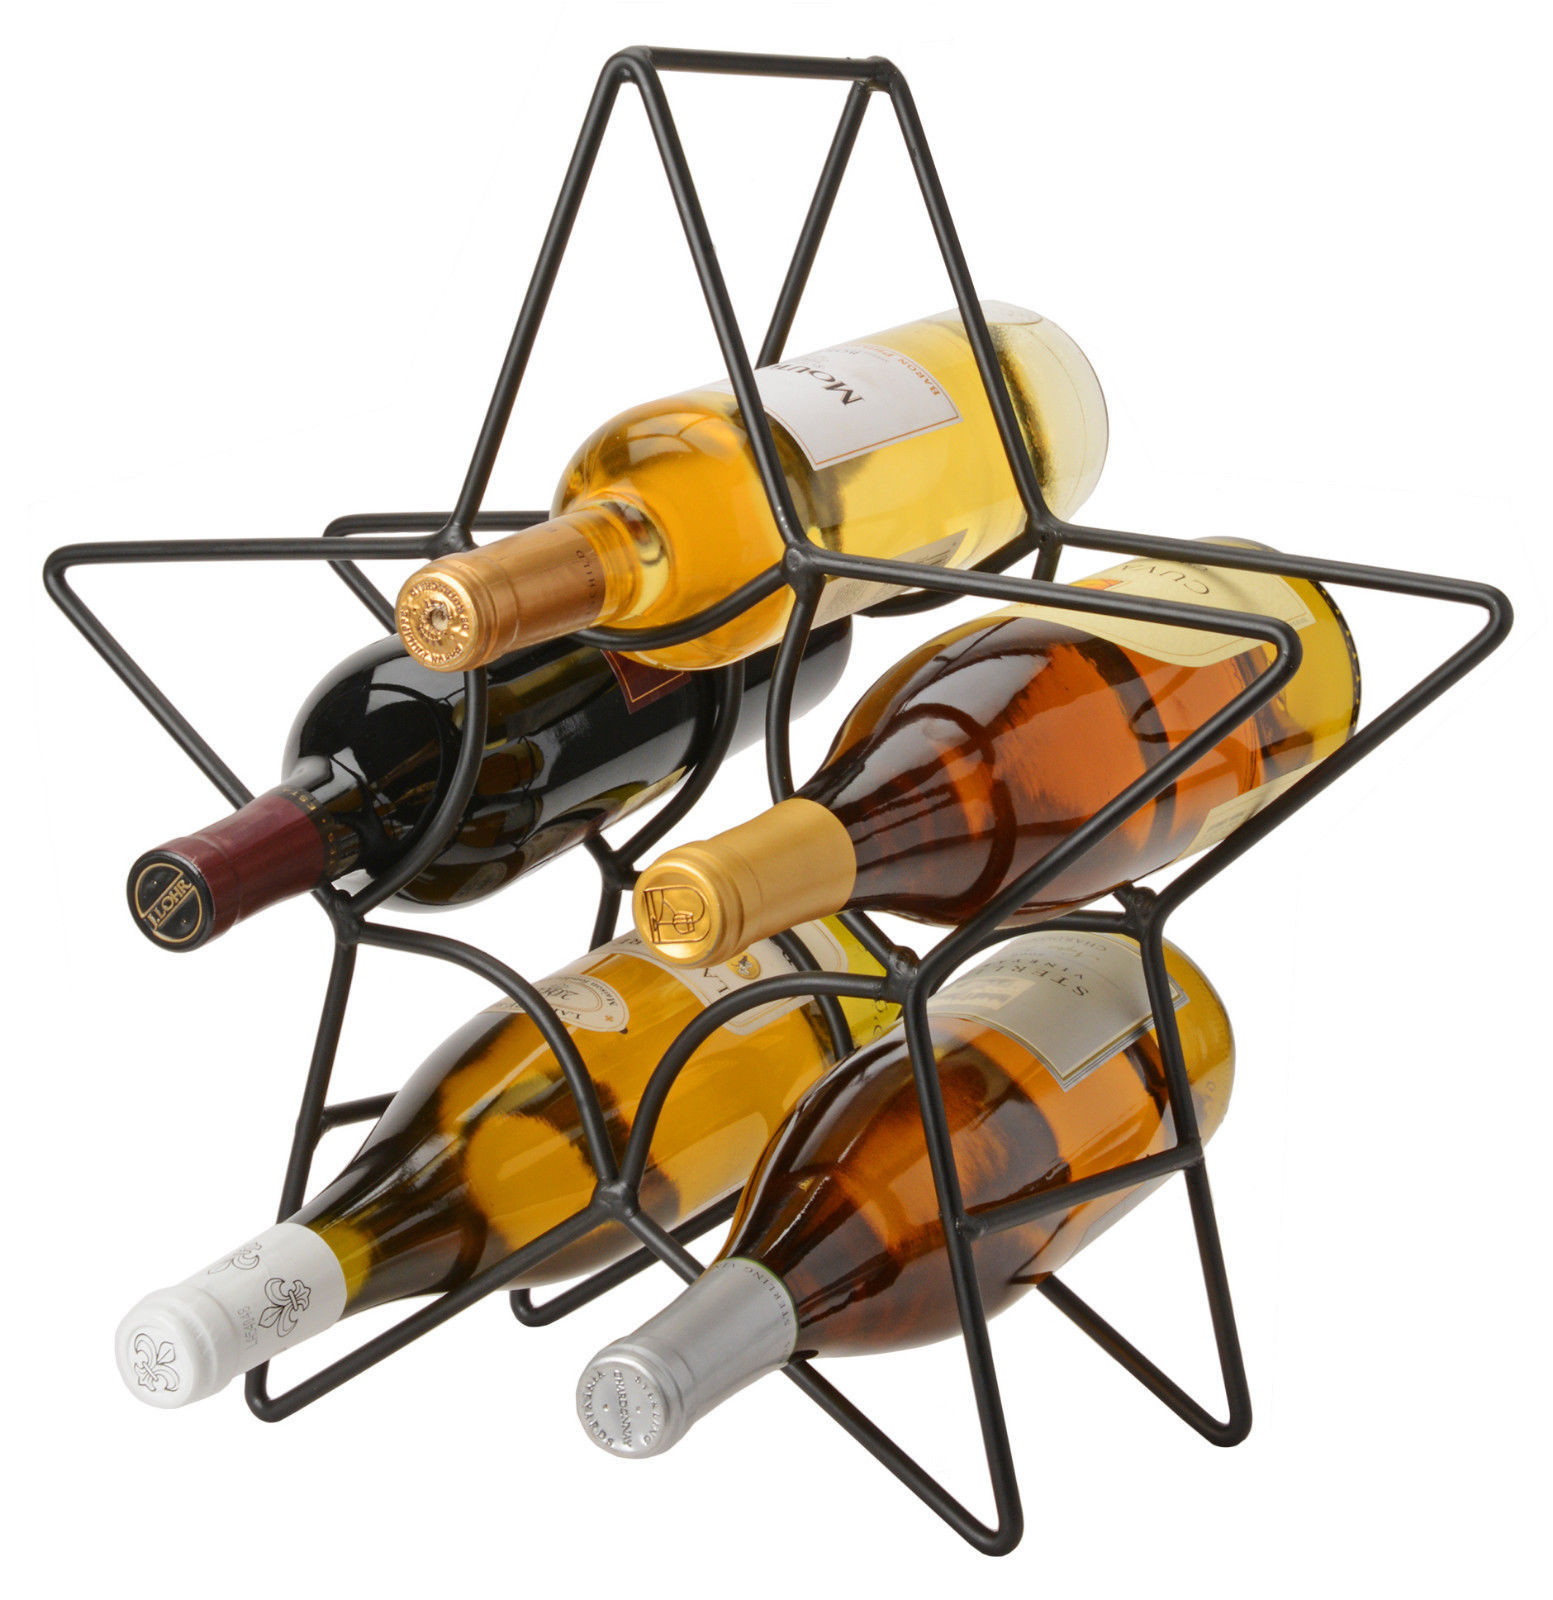 6 WINE BOTTLE HOLDER Amish Hand Forged Wrought Iron Star Table Counter Rack USA - $49.47